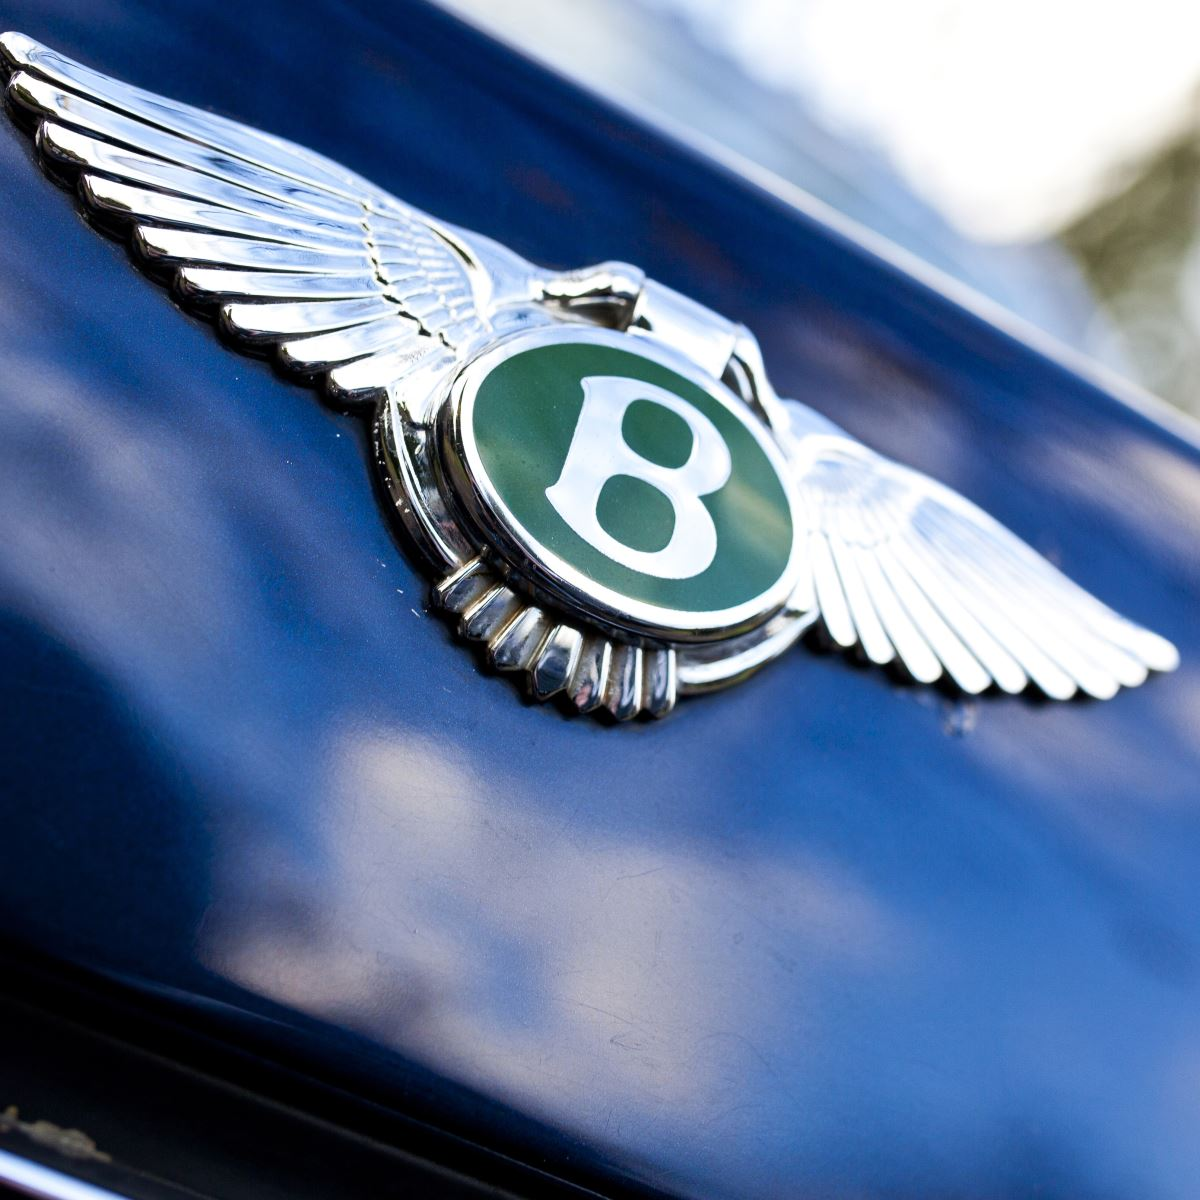 Bentley Chauffeured Car Hire